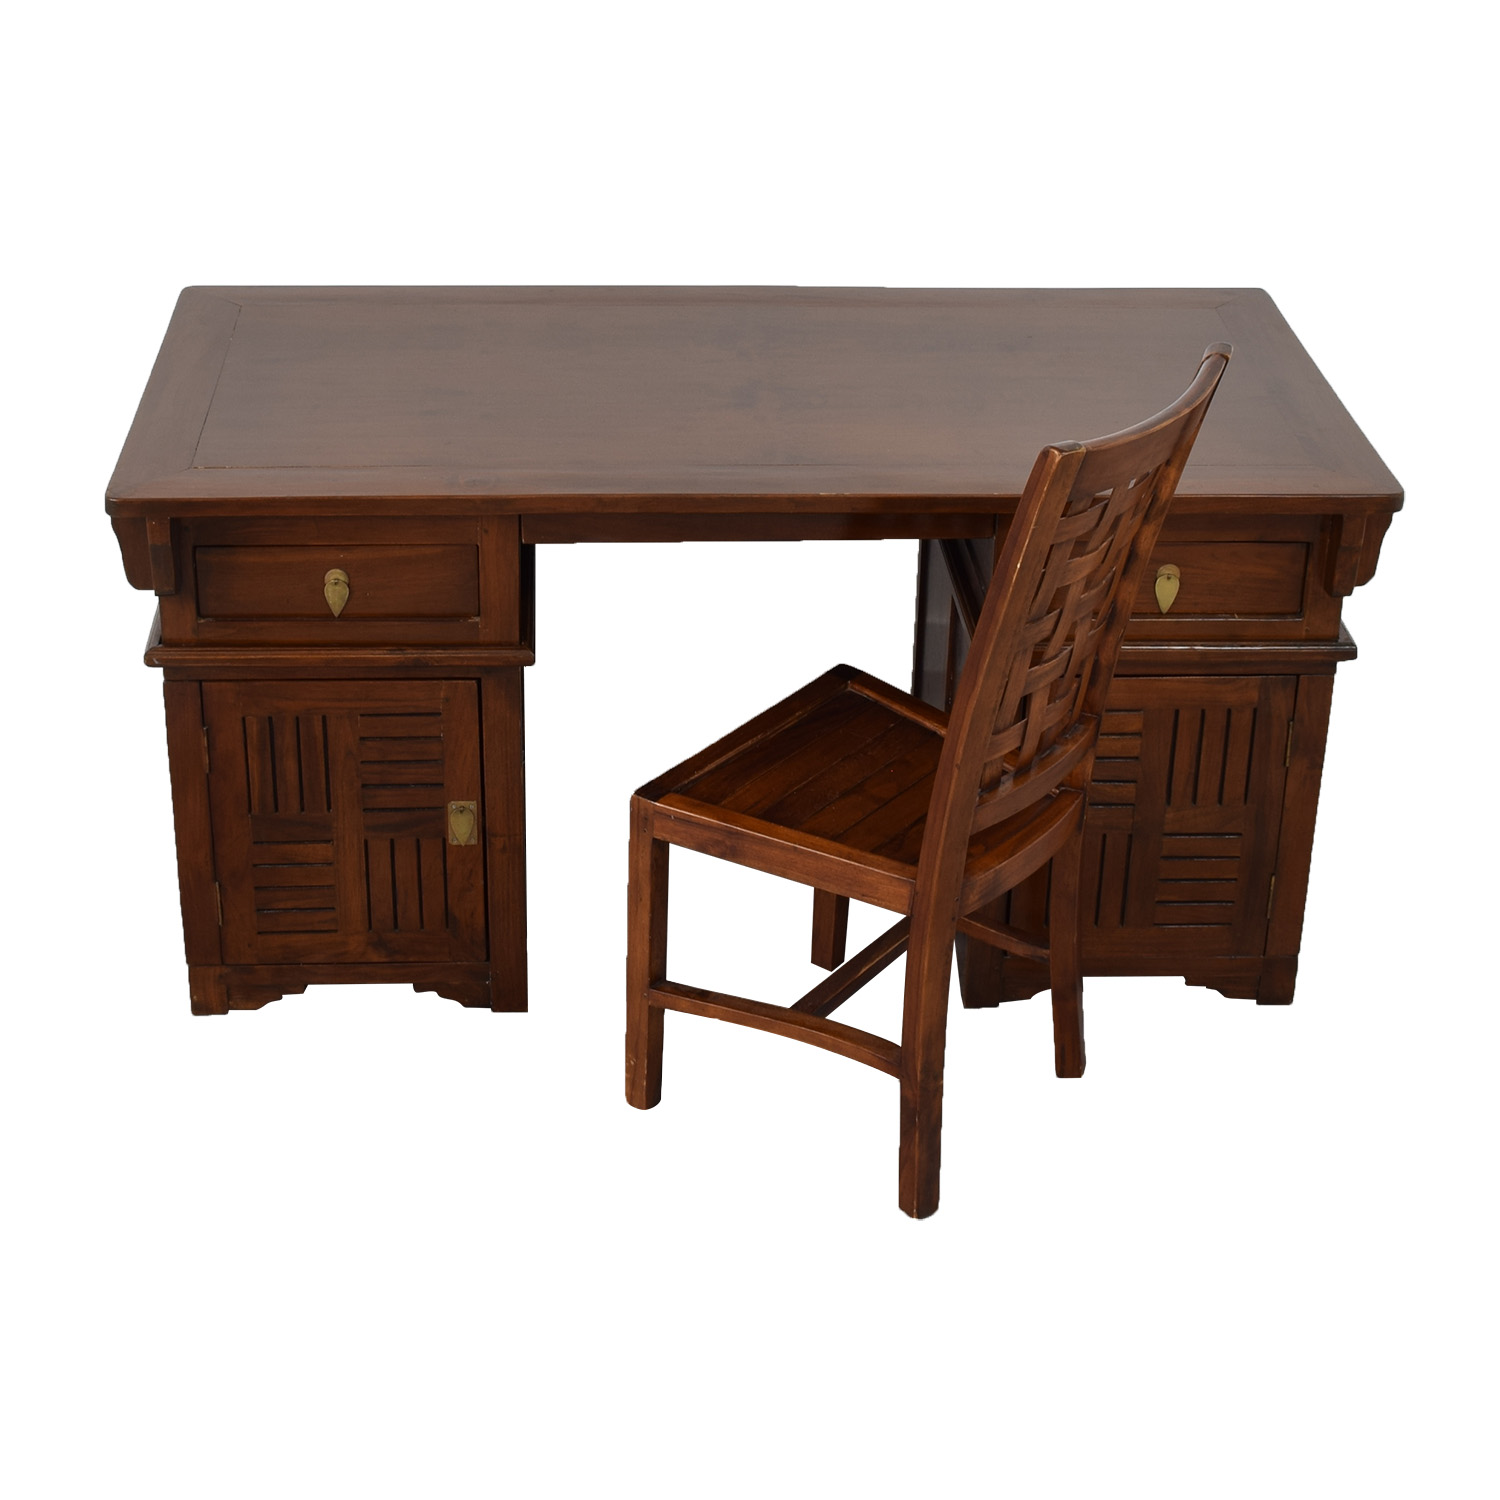 Antique study desk antique furniture for Antique furniture desk